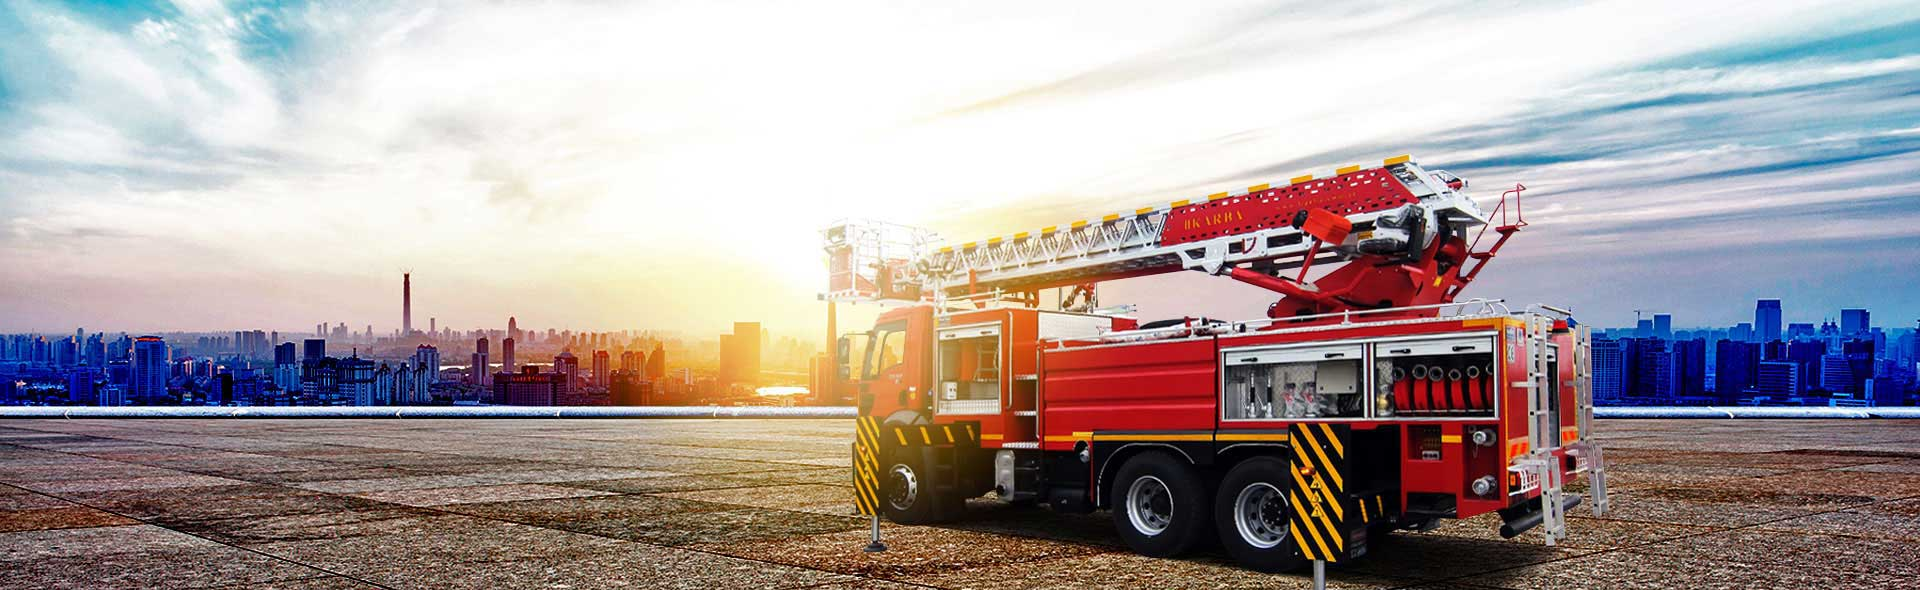 Hydraulic Ladder Fire Fighting Vehicles